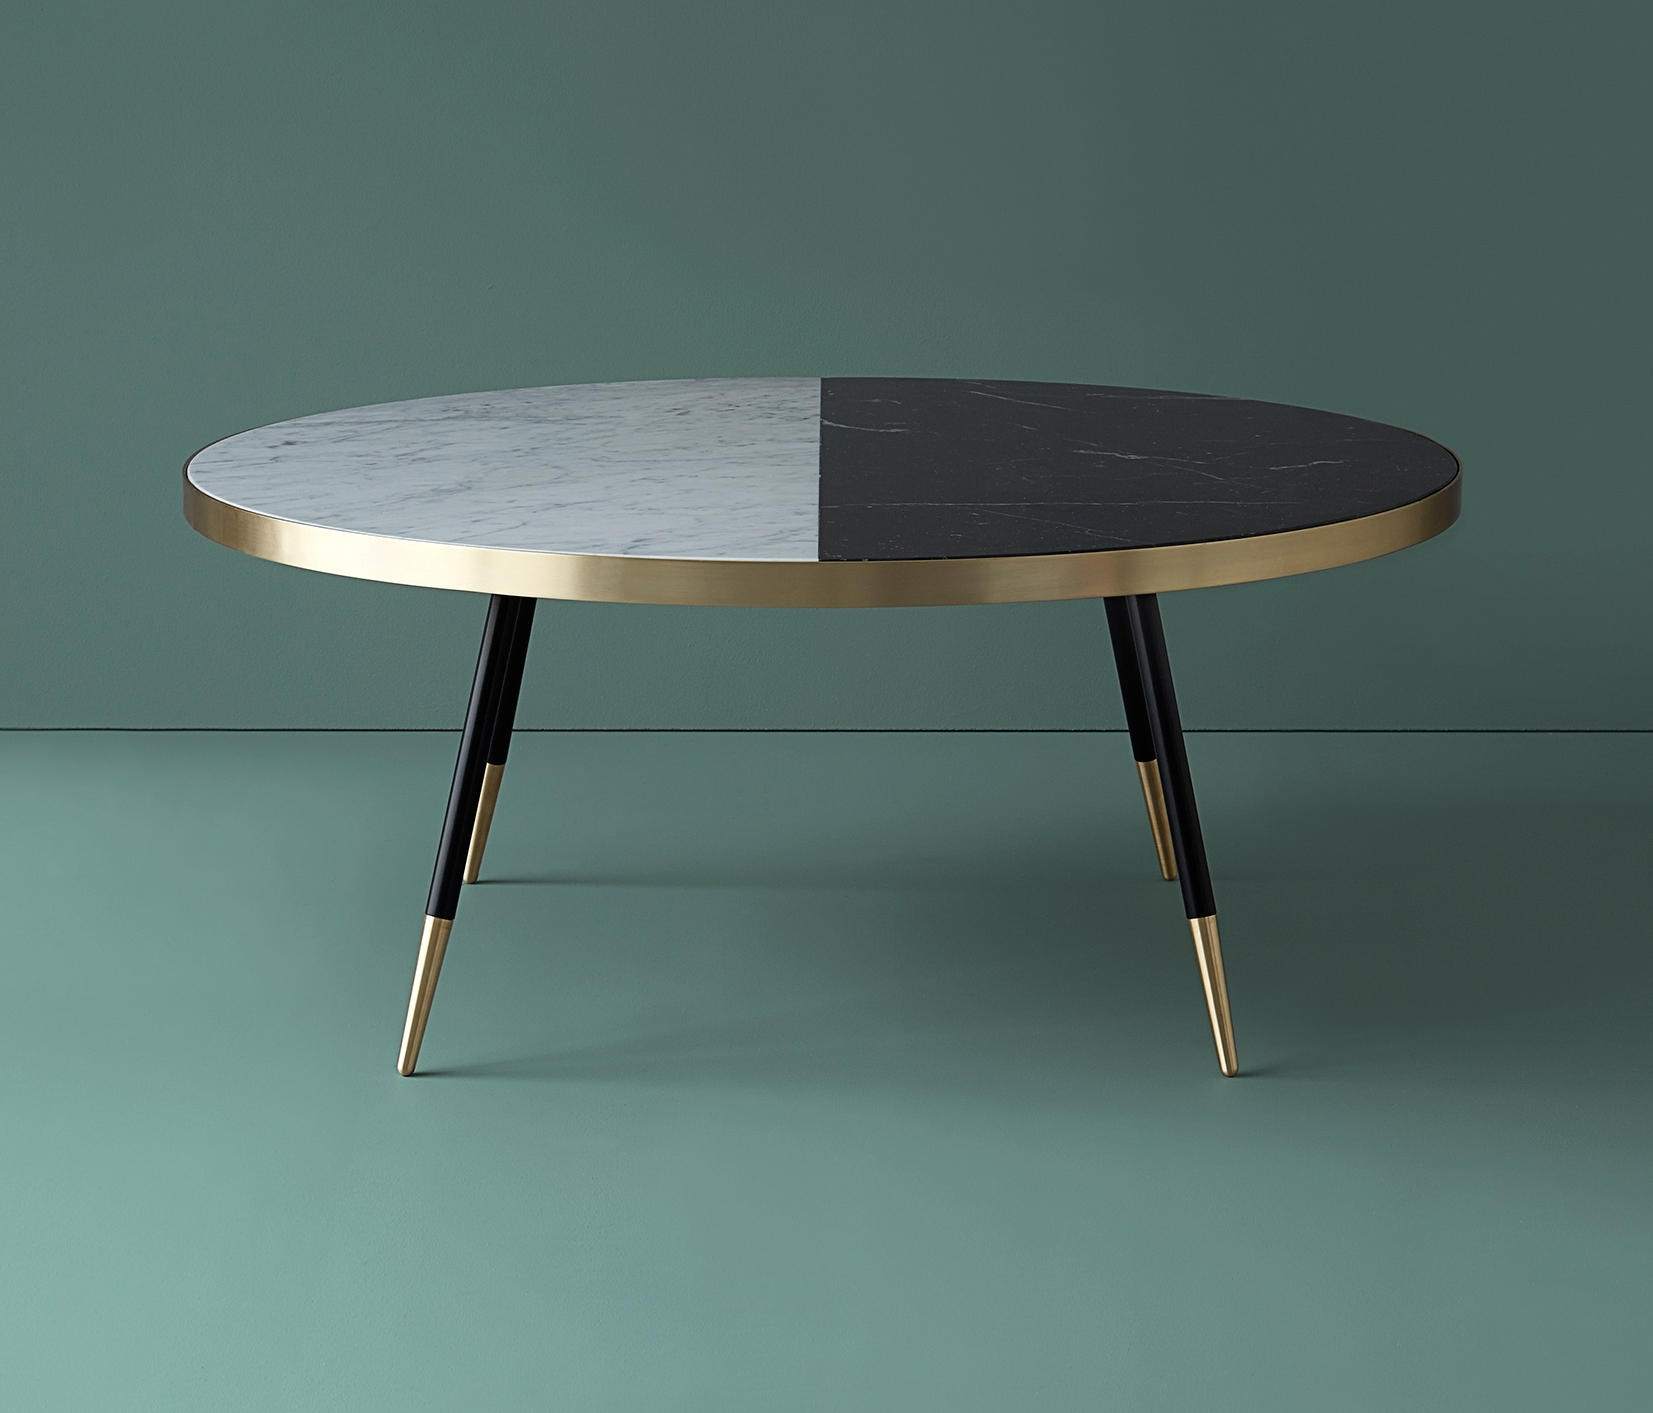 Band Marble Coffee Table - Coffee Tables From Bethan Gray | Architonic inside 2 Tone Grey and White Marble Coffee Tables (Image 2 of 30)